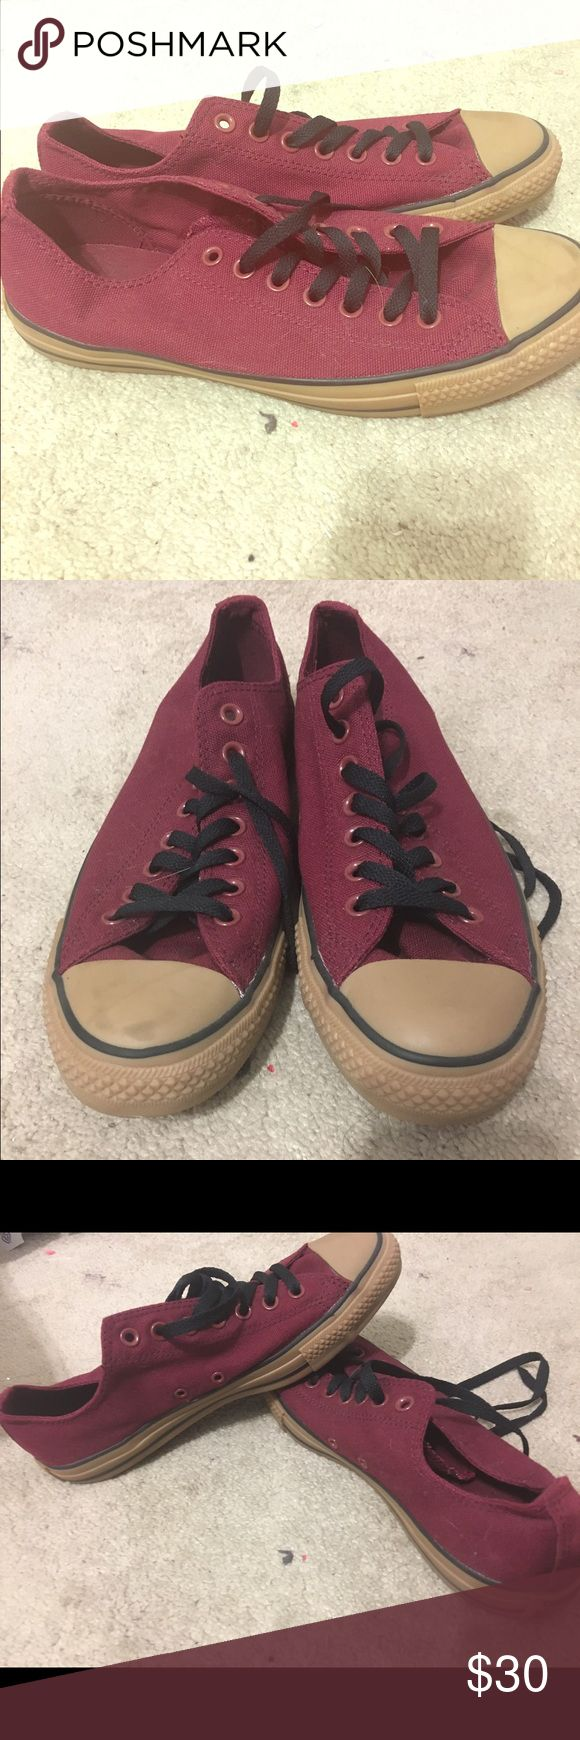 Converse burgundy canvas Size 11 Womens These burgundy cancas brown rubber converse i purchased from the converse store in mens size 9 and womens size 11 to small for my feet now but maybe perfect for yours never worn out just sitting it out in my closet Converse Shoes Sneakers